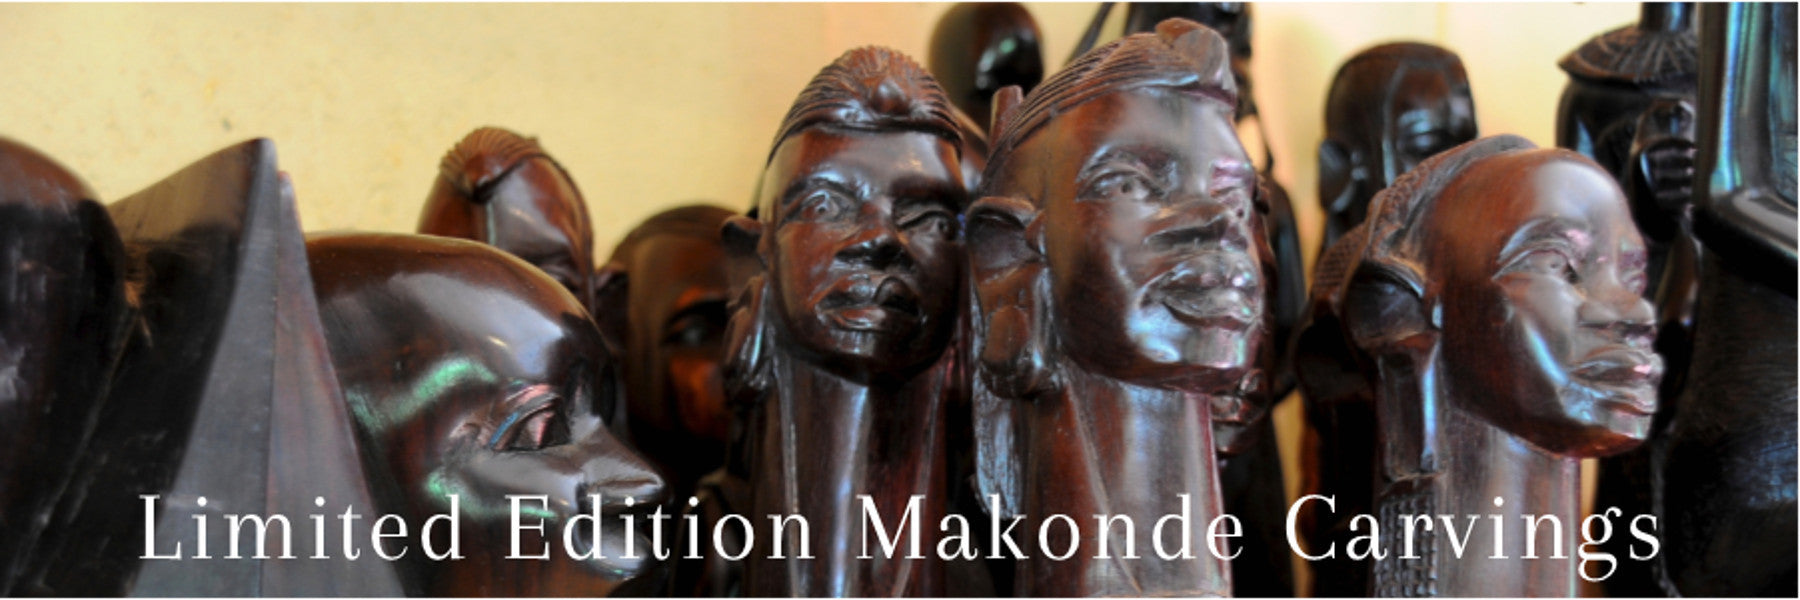 Limited Edition Makonde Carvings